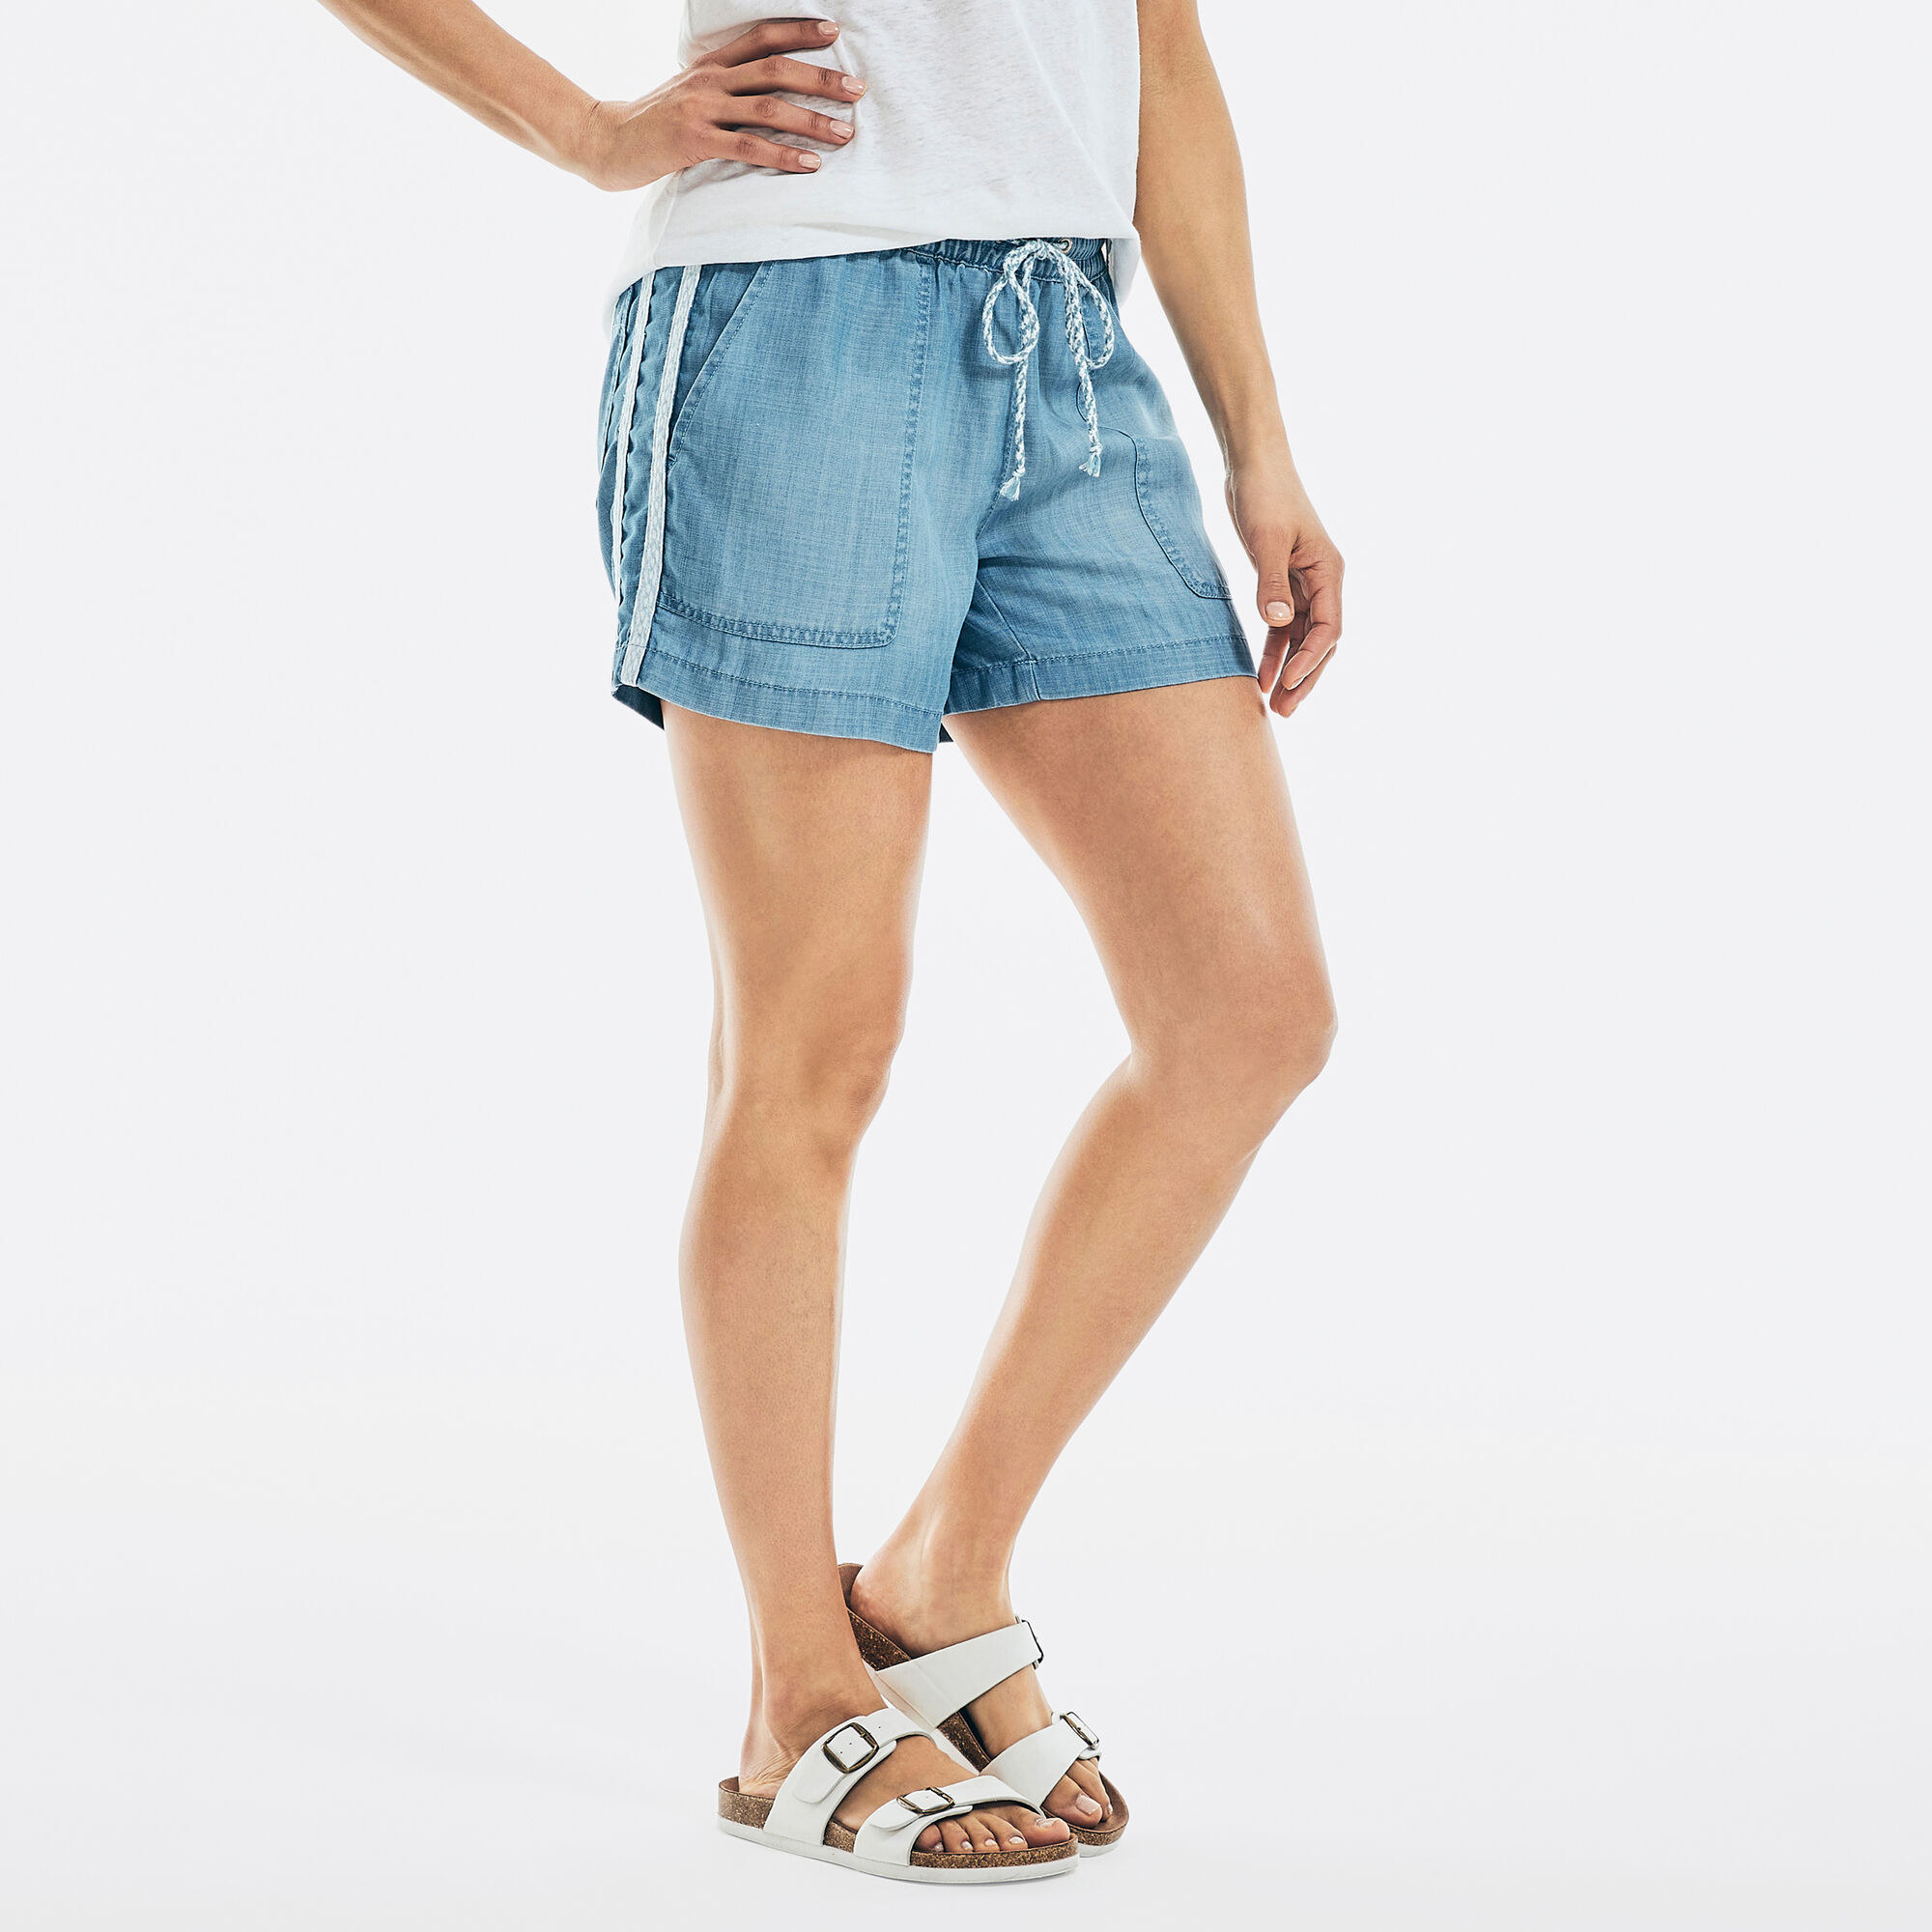 a model in pull on denim shorts